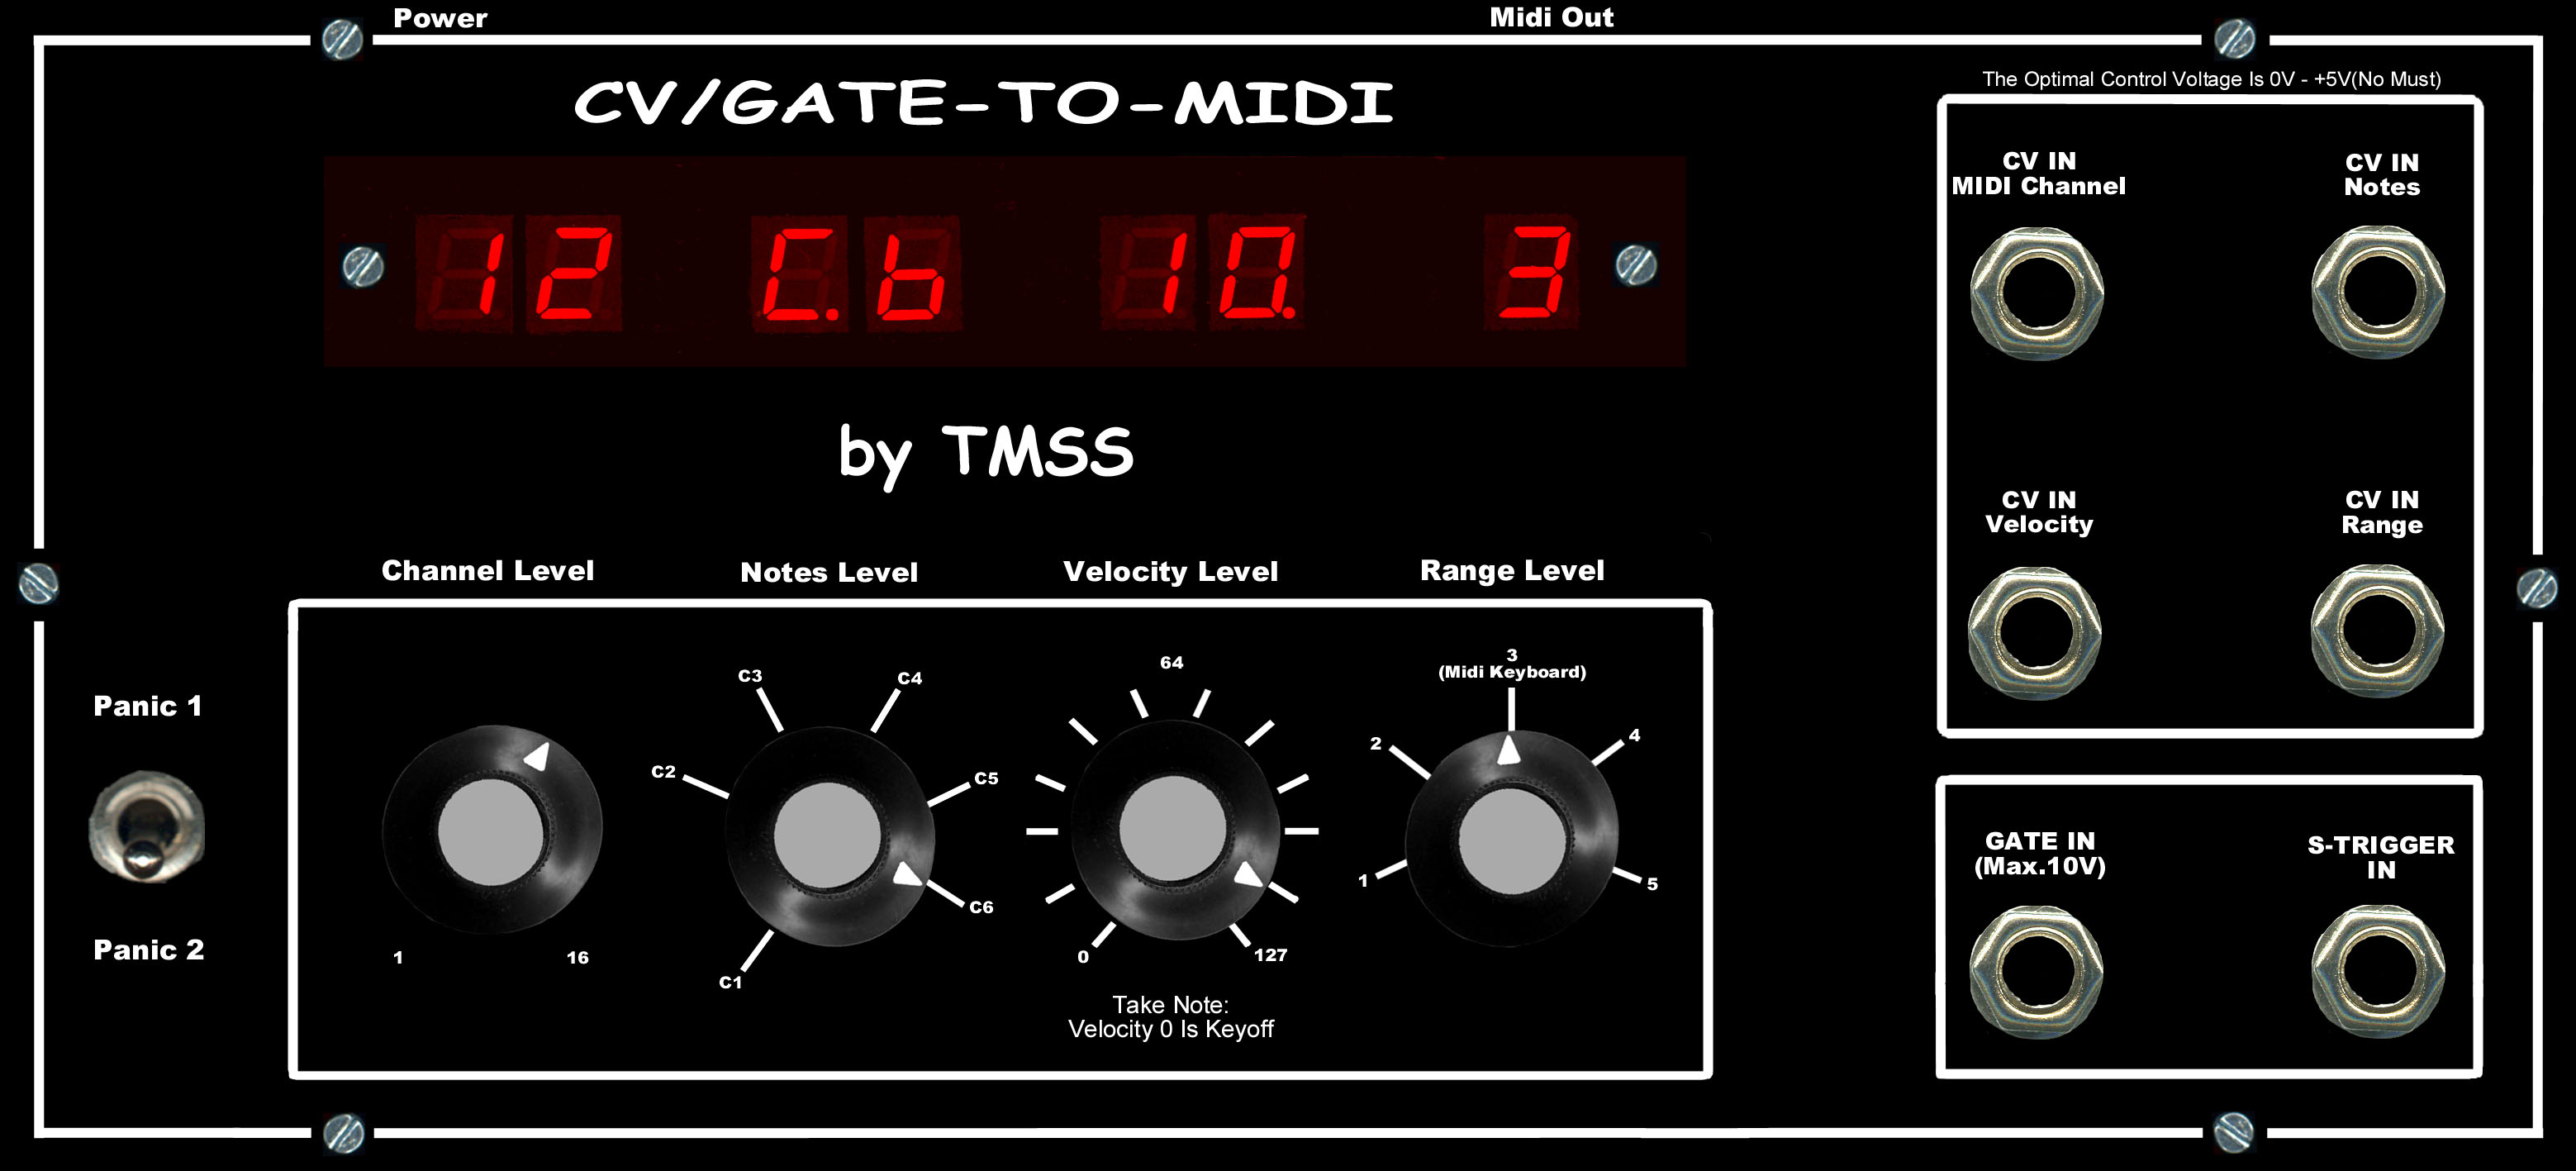 TMSS Theis CV to Midi Interface CV-Midi Interace by Horst Theis / TMSS synthesizer